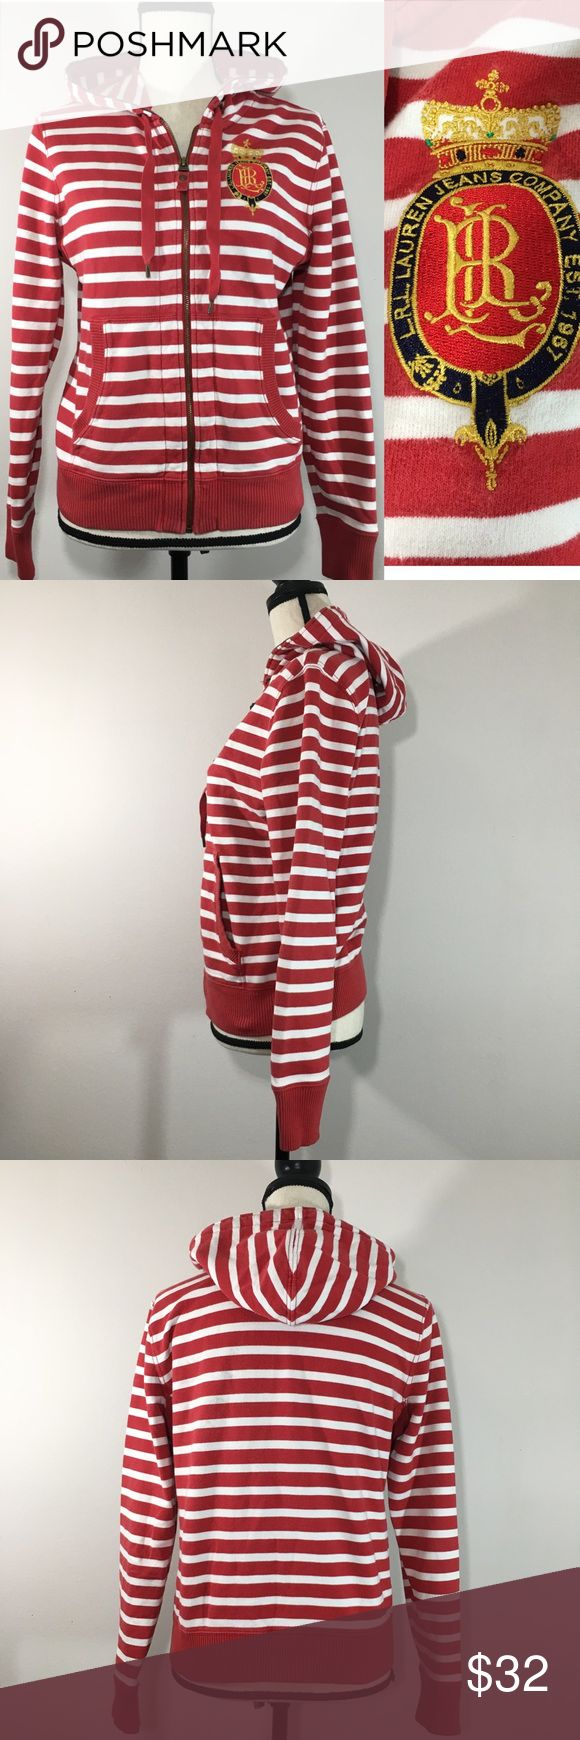 """Ralph Lauren Nautical Striped Hood Crest Full Zip Ralph Lauren Jeans Company Women's Red & White Nautical Striped Hoodie Crest Logo Full Zip - Size Small  Lauren Jeans Company Women's Hoodie  * Embroidered L.R.L. Crest on Front * Ribbed Hem and Cuffs * Full-Zip Front * Underarm Patch with Ventilating Grommets * Front Pockets meet at the Zipper * Hood with Drawstring * Size S: Chest-38"""", Length: 22"""", Sleeve: 23"""" * Brand: RALPH LAUREN JEANS COMPANY * 100% Cotton. * Pre-owned with…"""